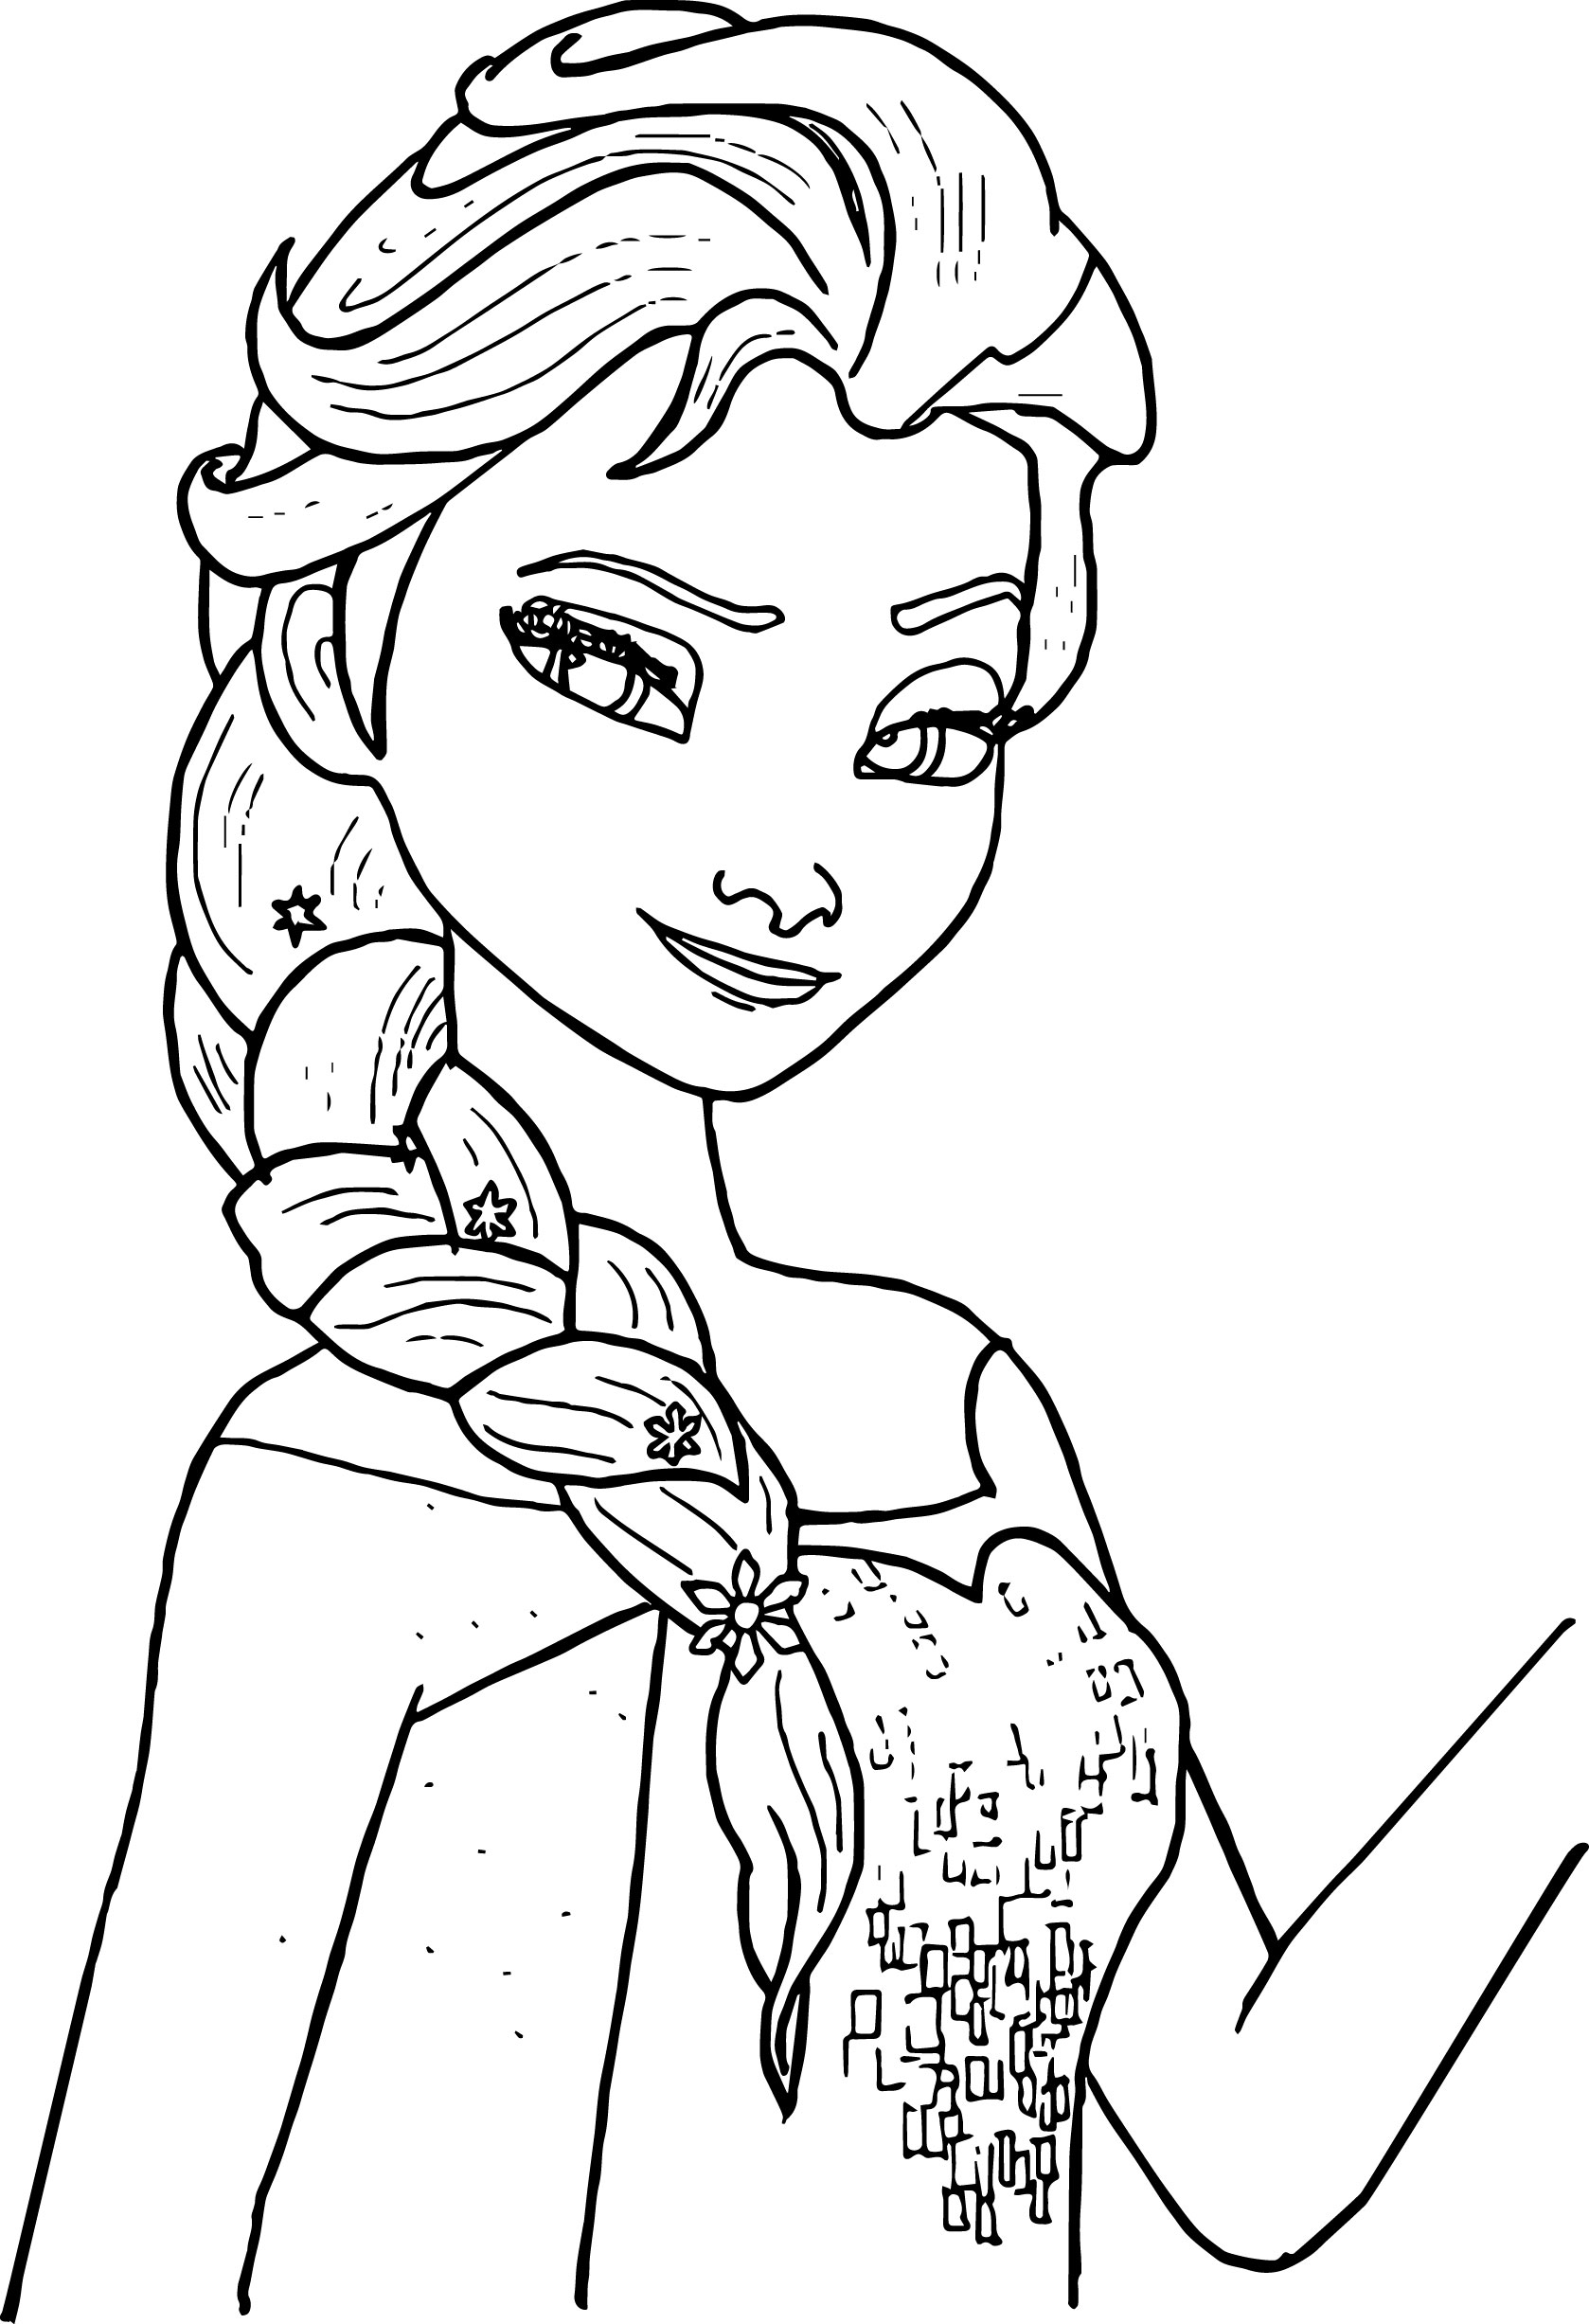 kids coloring pages printables - photo#3